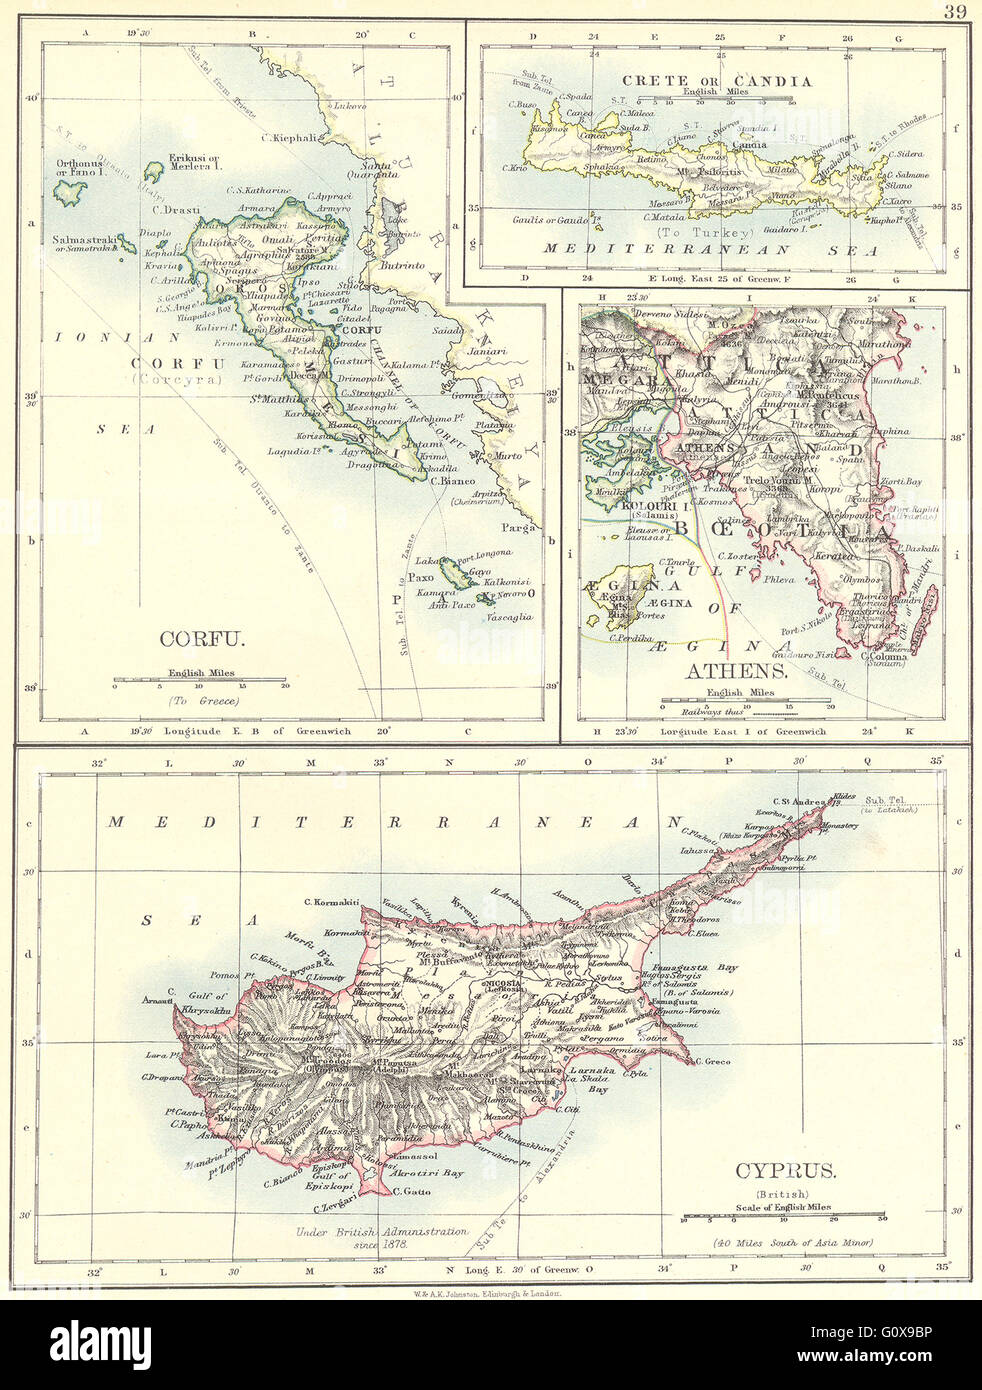 Greece corfu crete or candia athens cyprus 1897 antique map greece corfu crete or candia athens cyprus 1897 antique map gumiabroncs Images